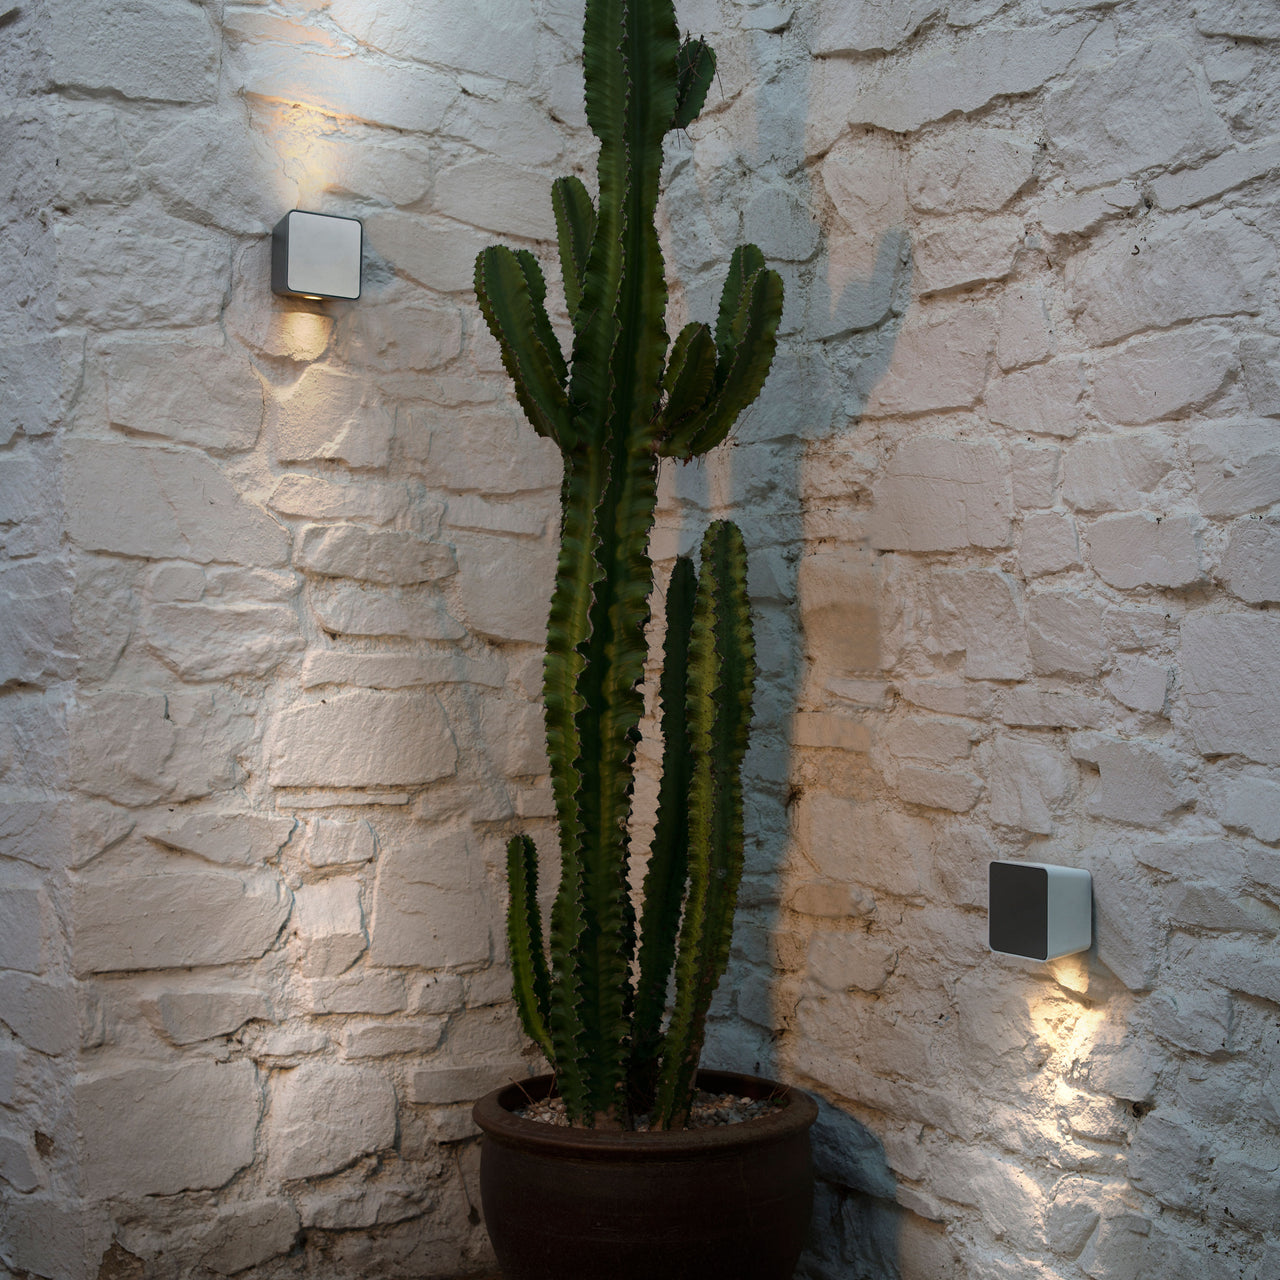 Lab Indoor/Outdoor Wall Light